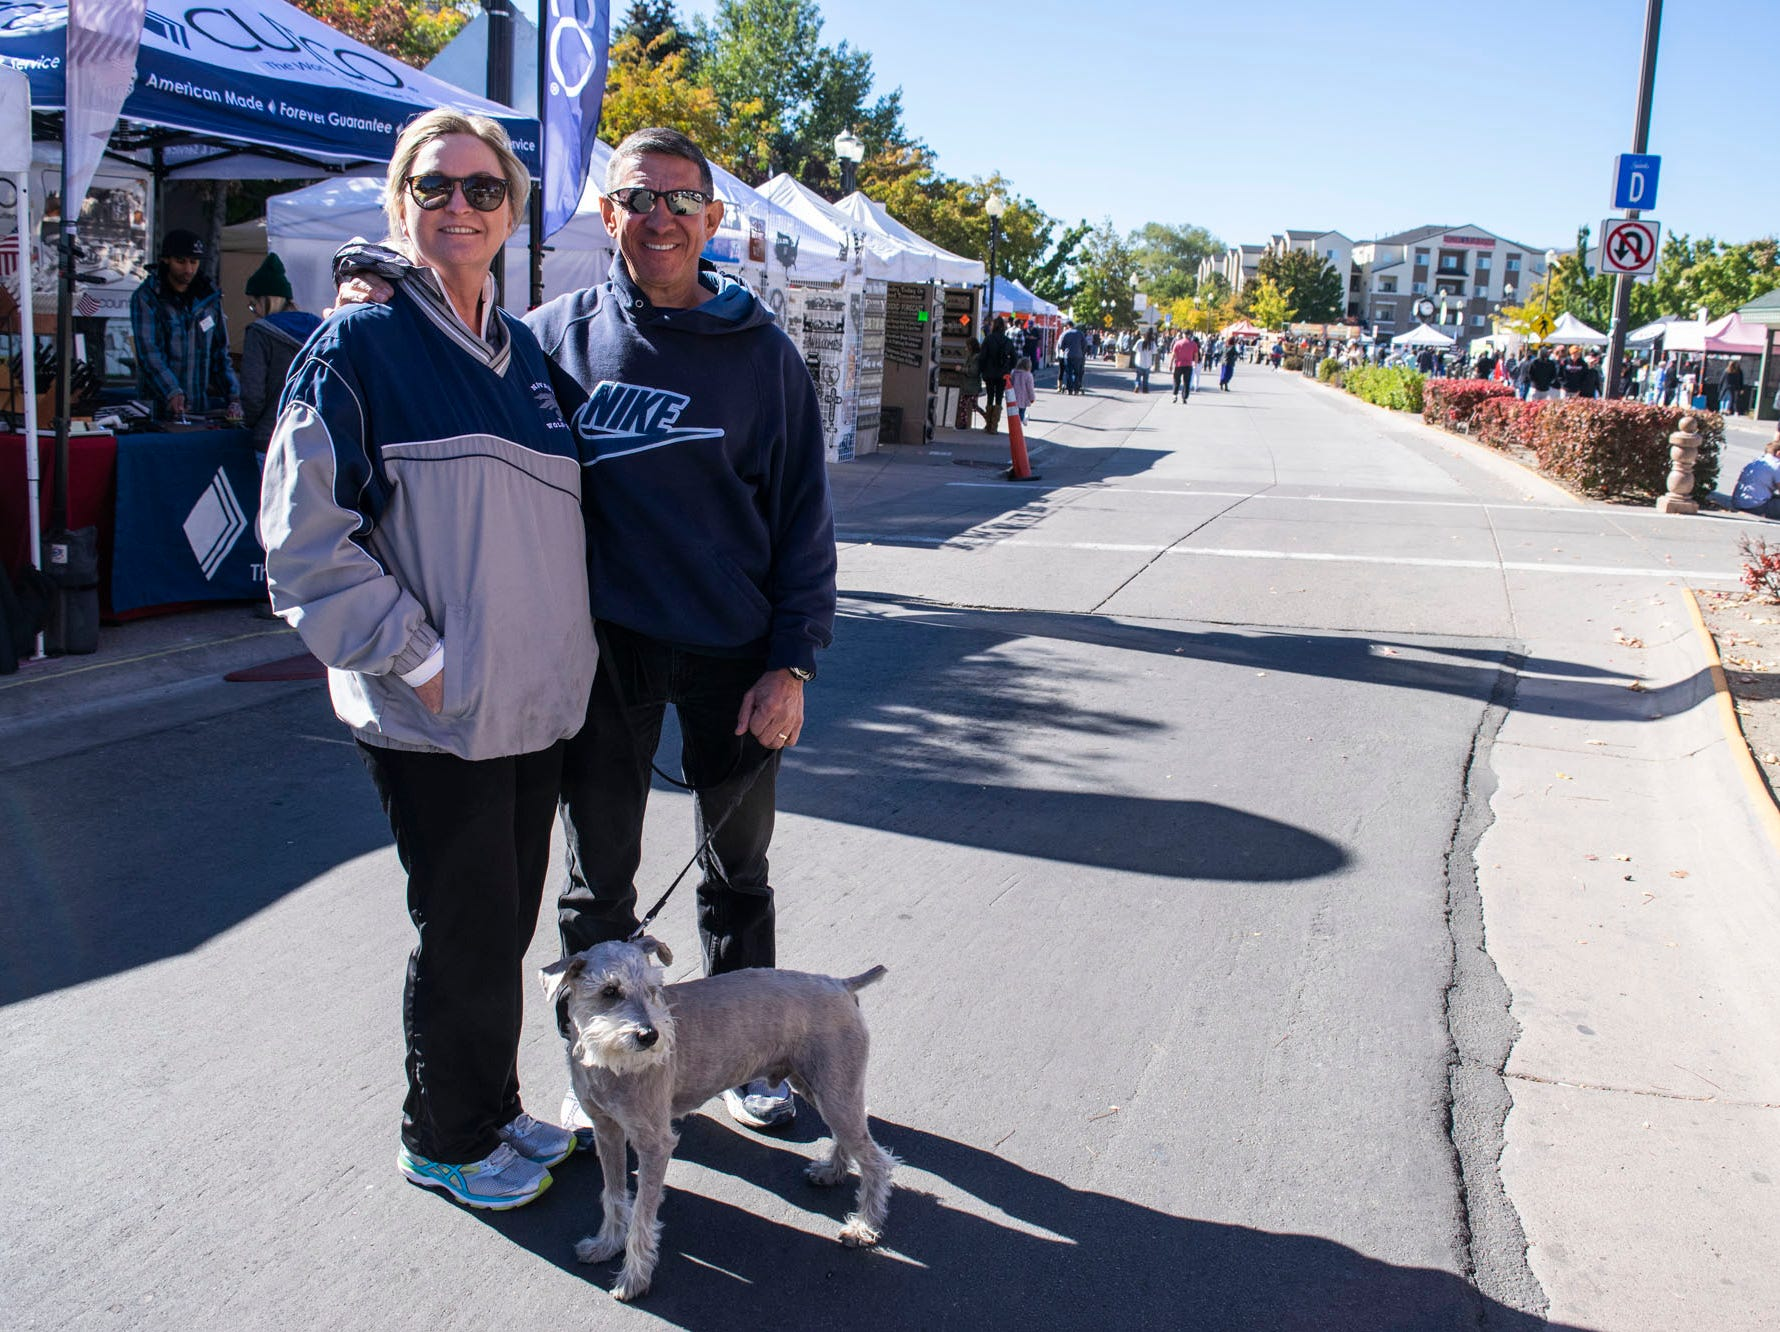 Gordon Gagnon, his dog Joe, and a friend attend the Nugget's Southern Fare on the Square on Sunday, Oct. 14, 2018. Sparks, Nev.